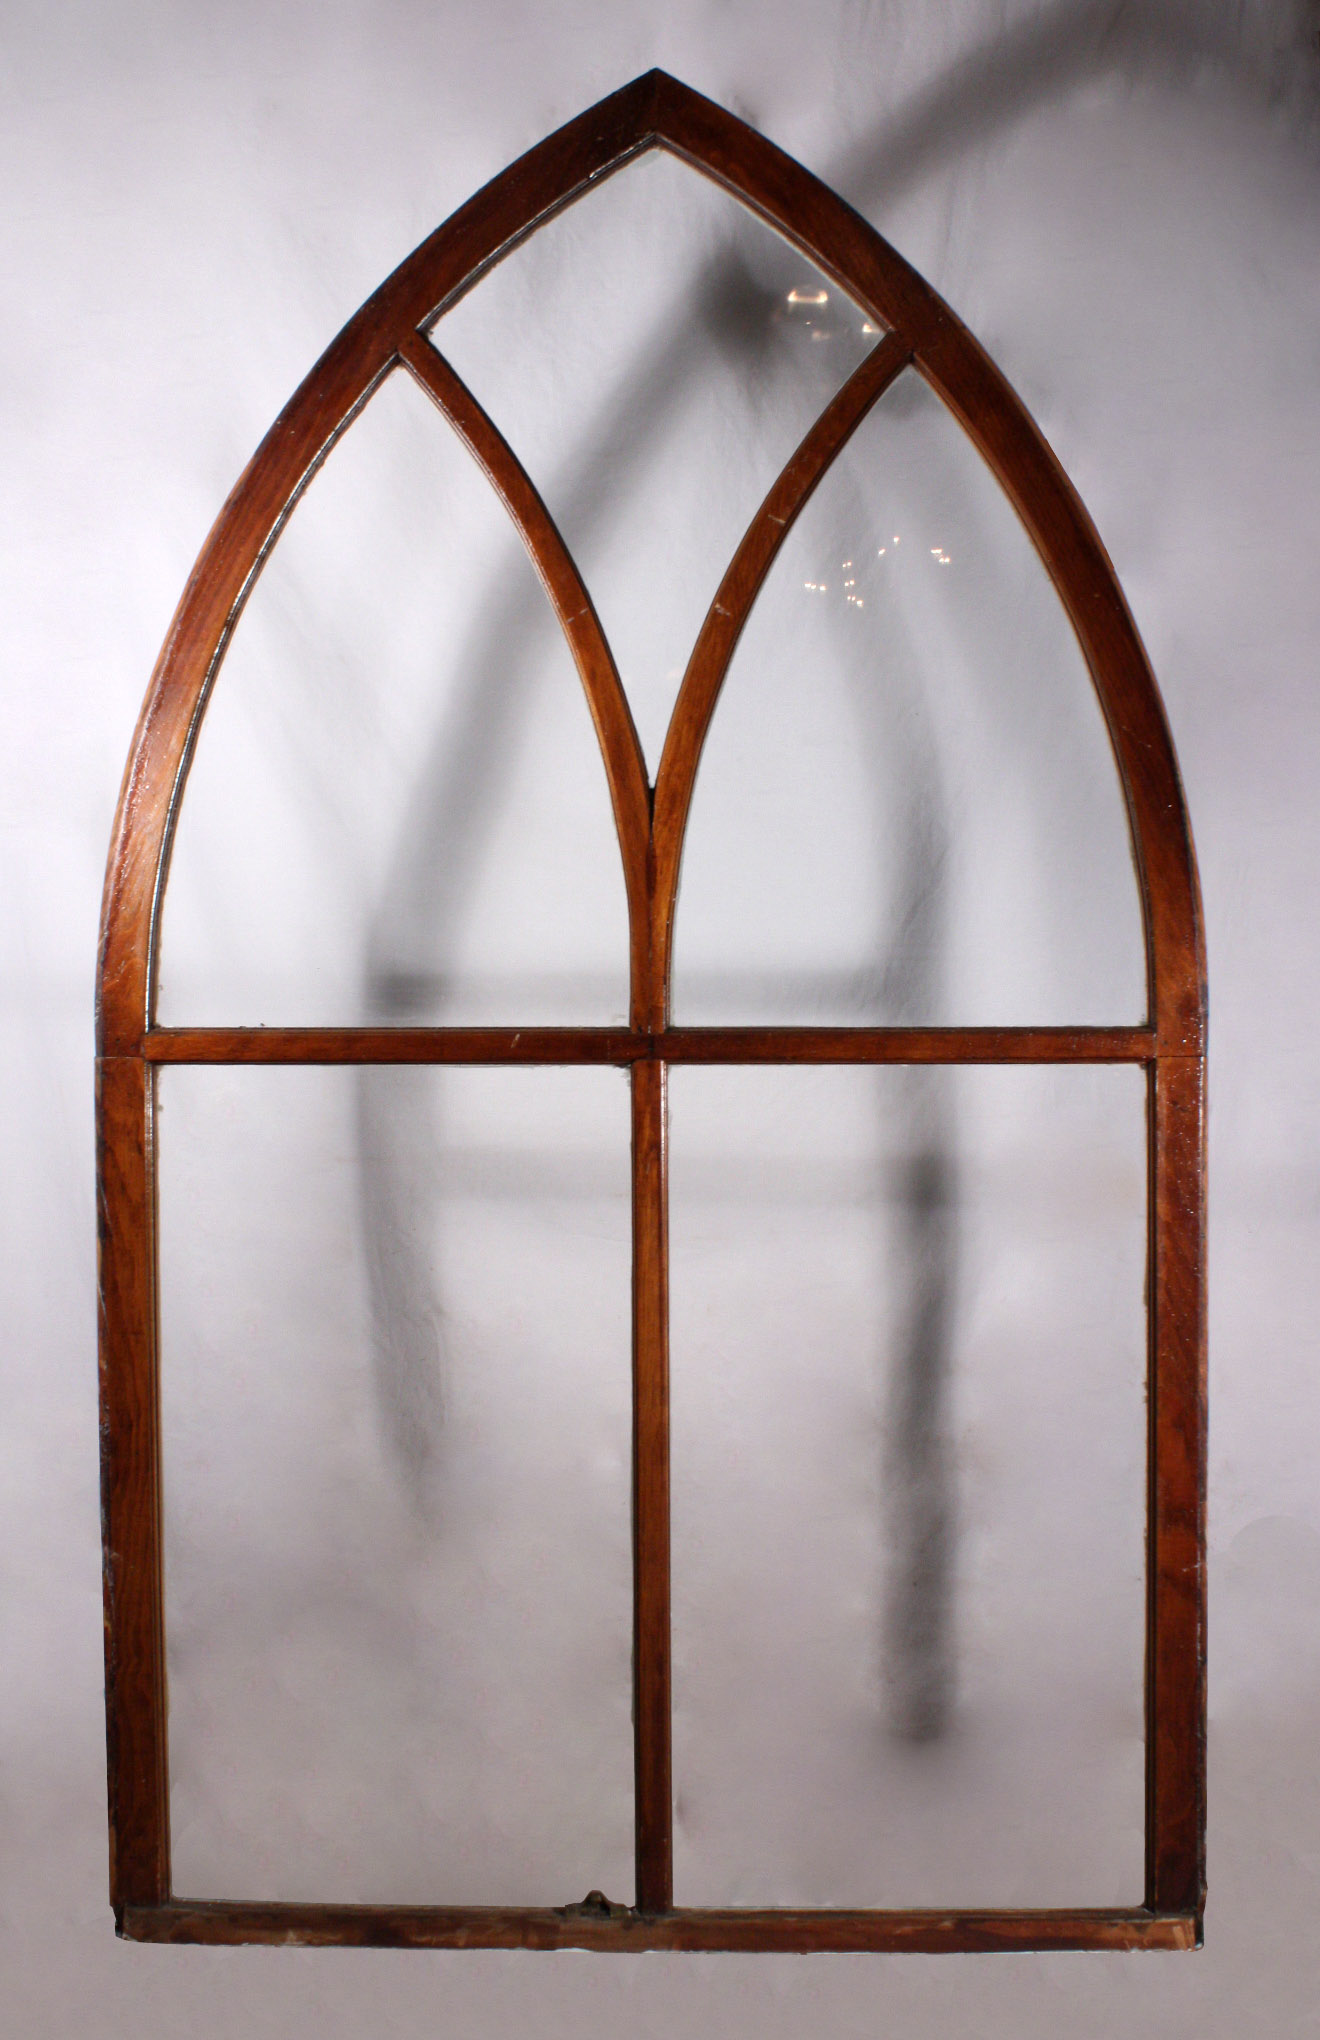 superb antique arched gothic window early 1900s nw5 for sale - Window Frames For Sale